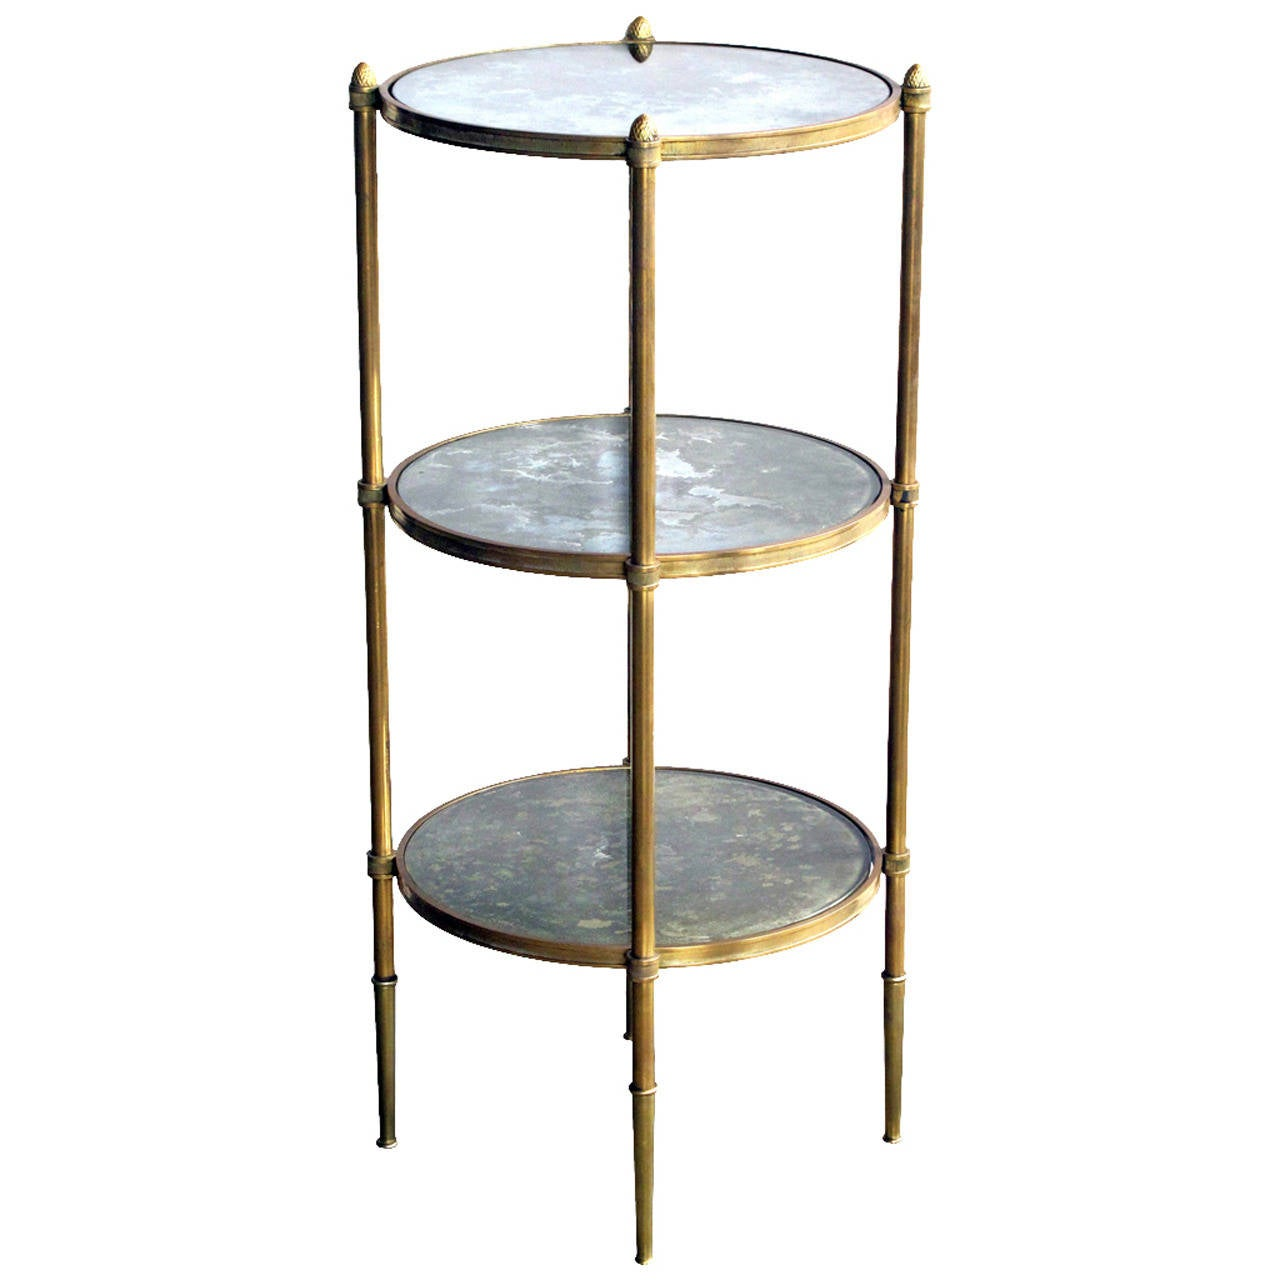 Brass Three Tier Circular Side Table With Mirrored Shelves By Maison Bagues  1